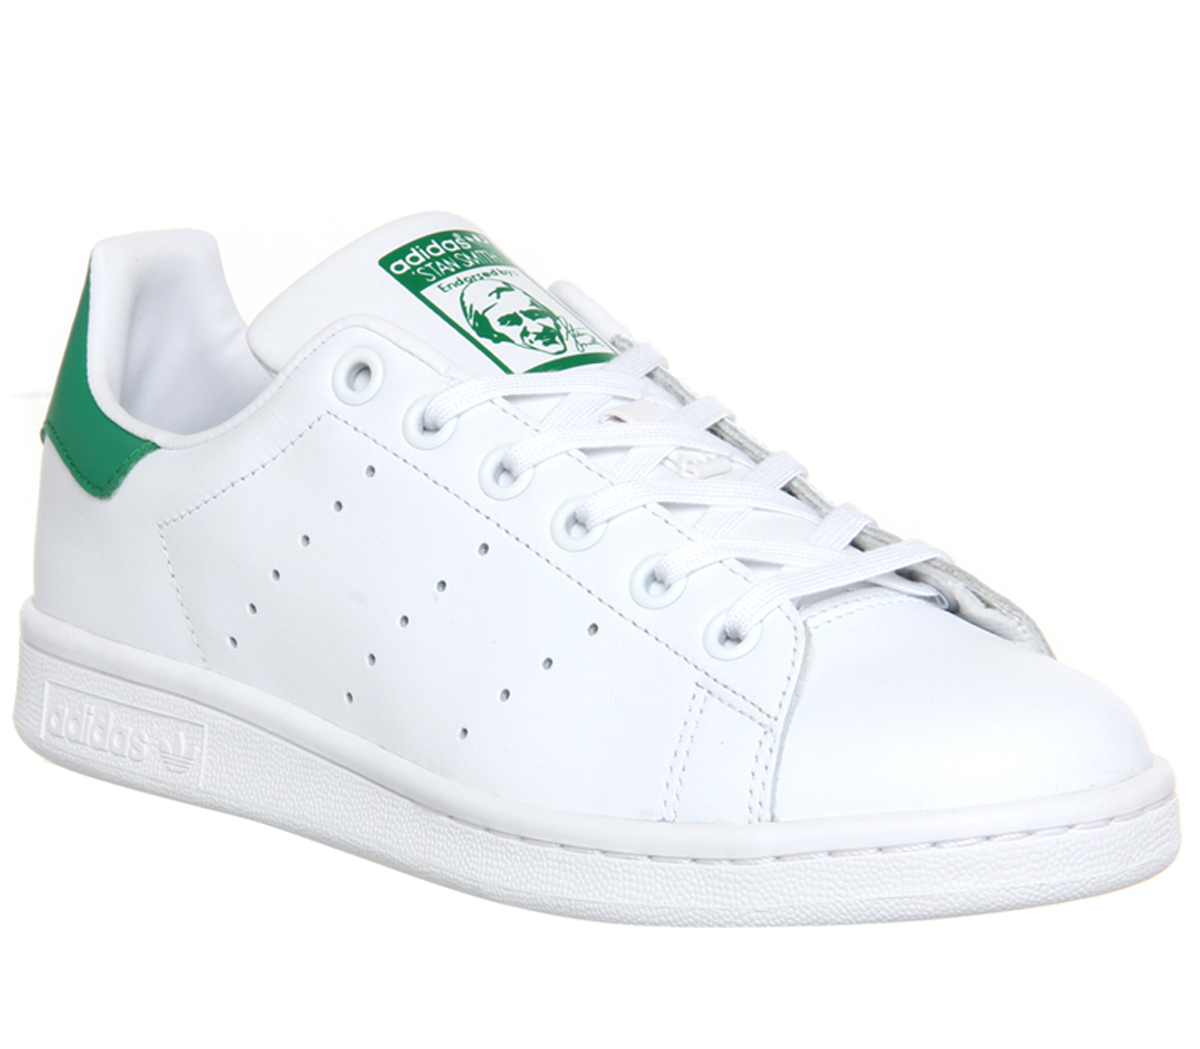 Details about Mens Adidas Stan Smith Trainers Core White Green Trainers  Shoes